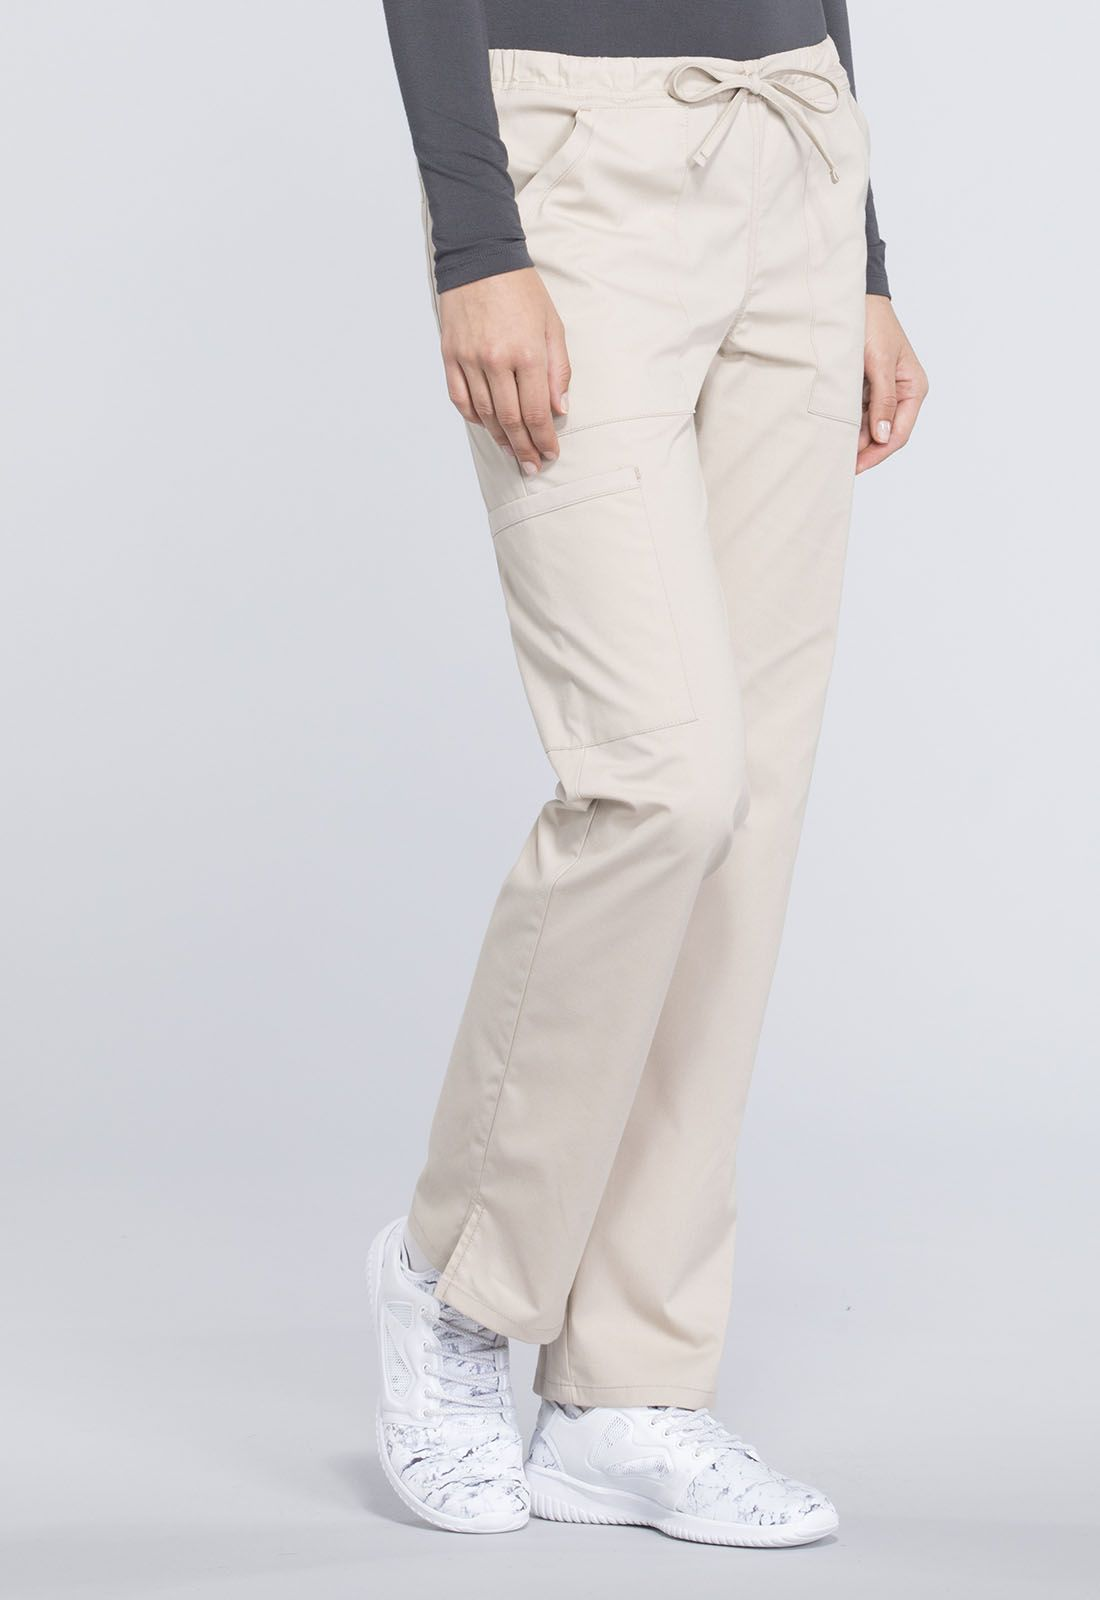 https://medcloth.by/images/stories/virtuemart/product/cherokee-ww160-khaki-3.jpg